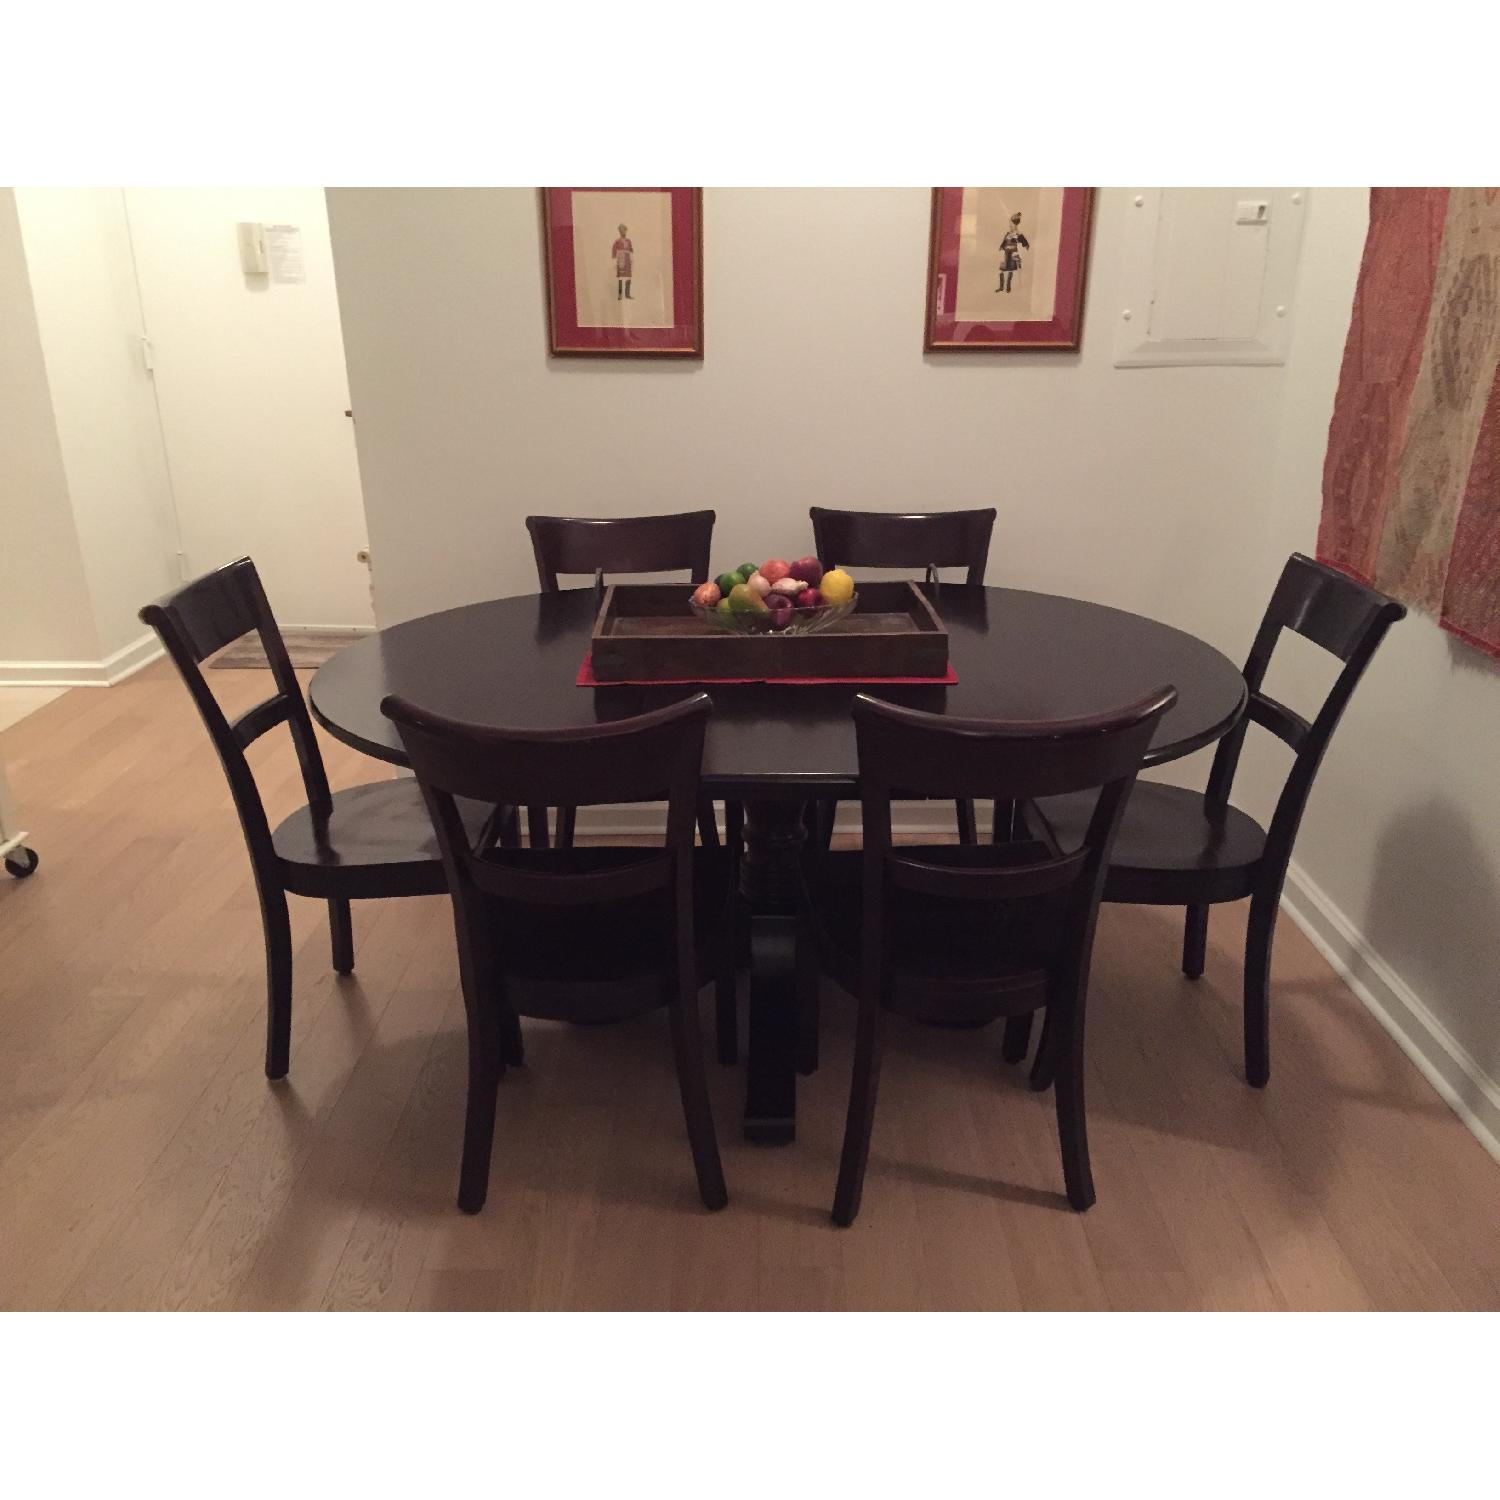 Crate & Barrel Dining Room Table w/ 6 Chairs - image-1